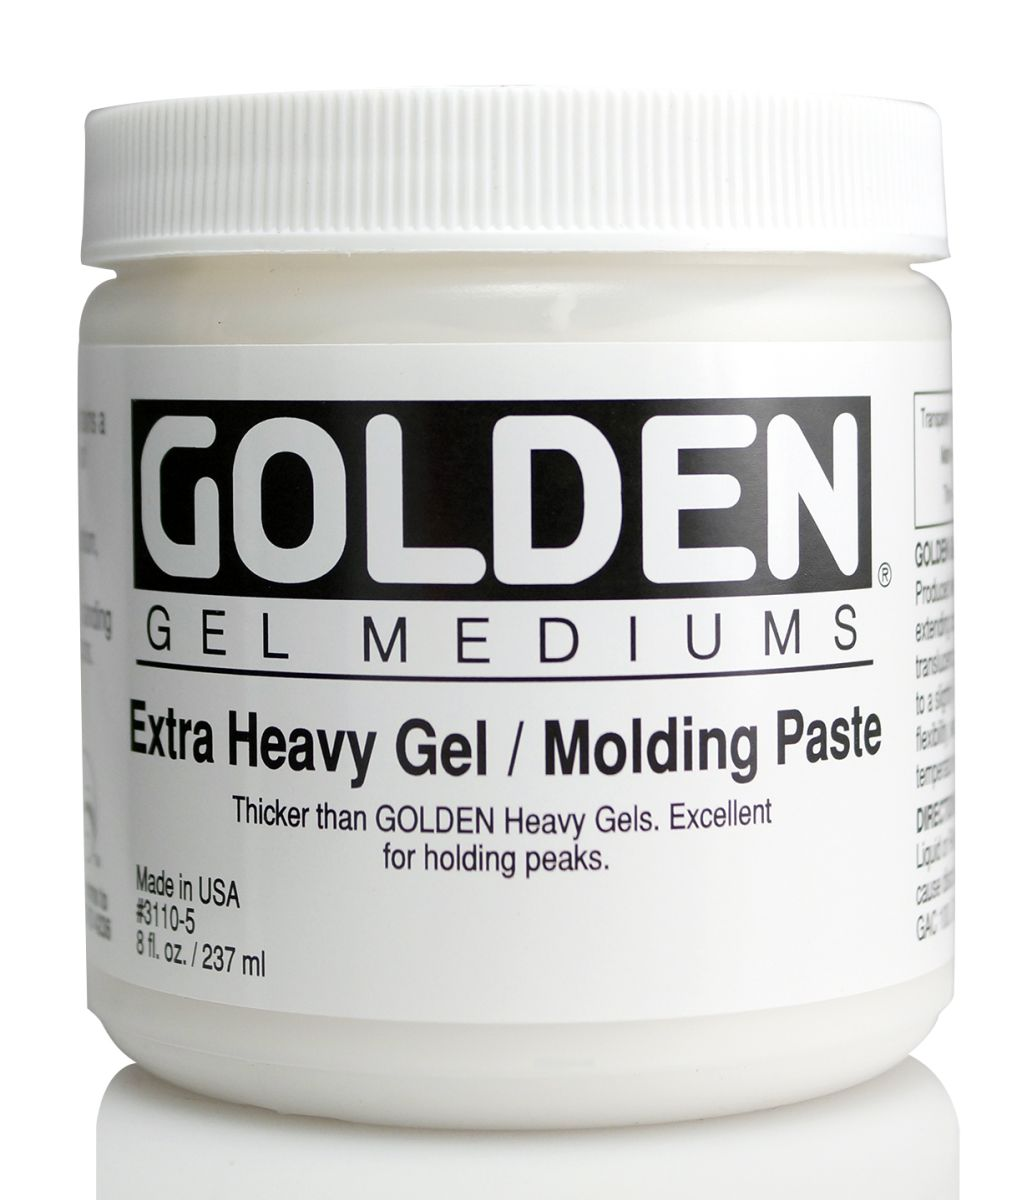 Golden Extra Heavyl/Molding Paste 119ml Dose